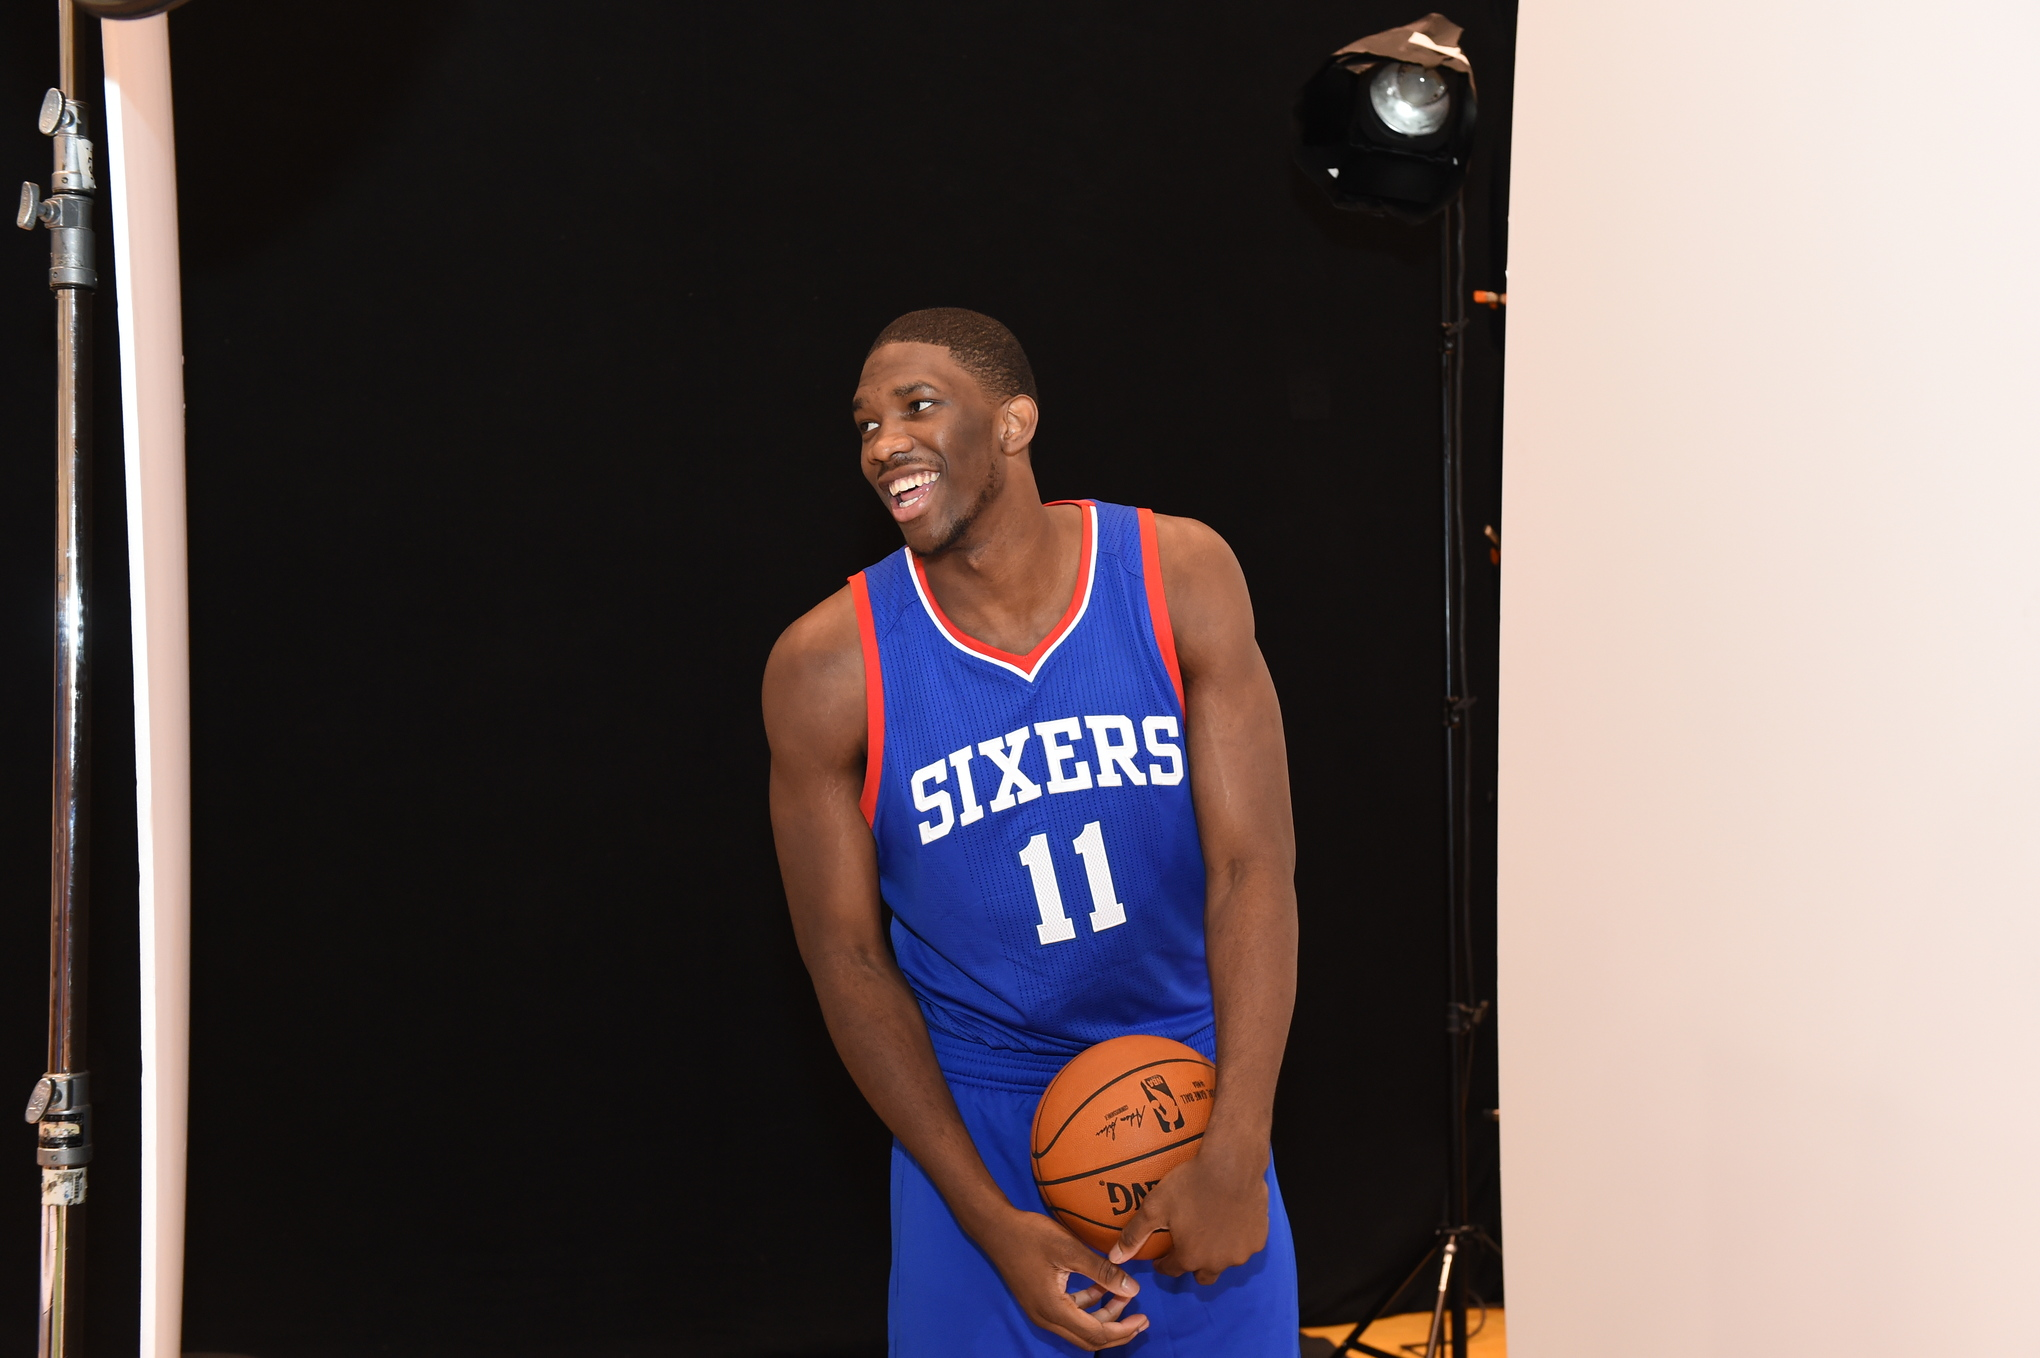 Joel Embiid Dons Sixers Jersey for First Time At Rookie Photoshoot ... 7c4a9cba11c